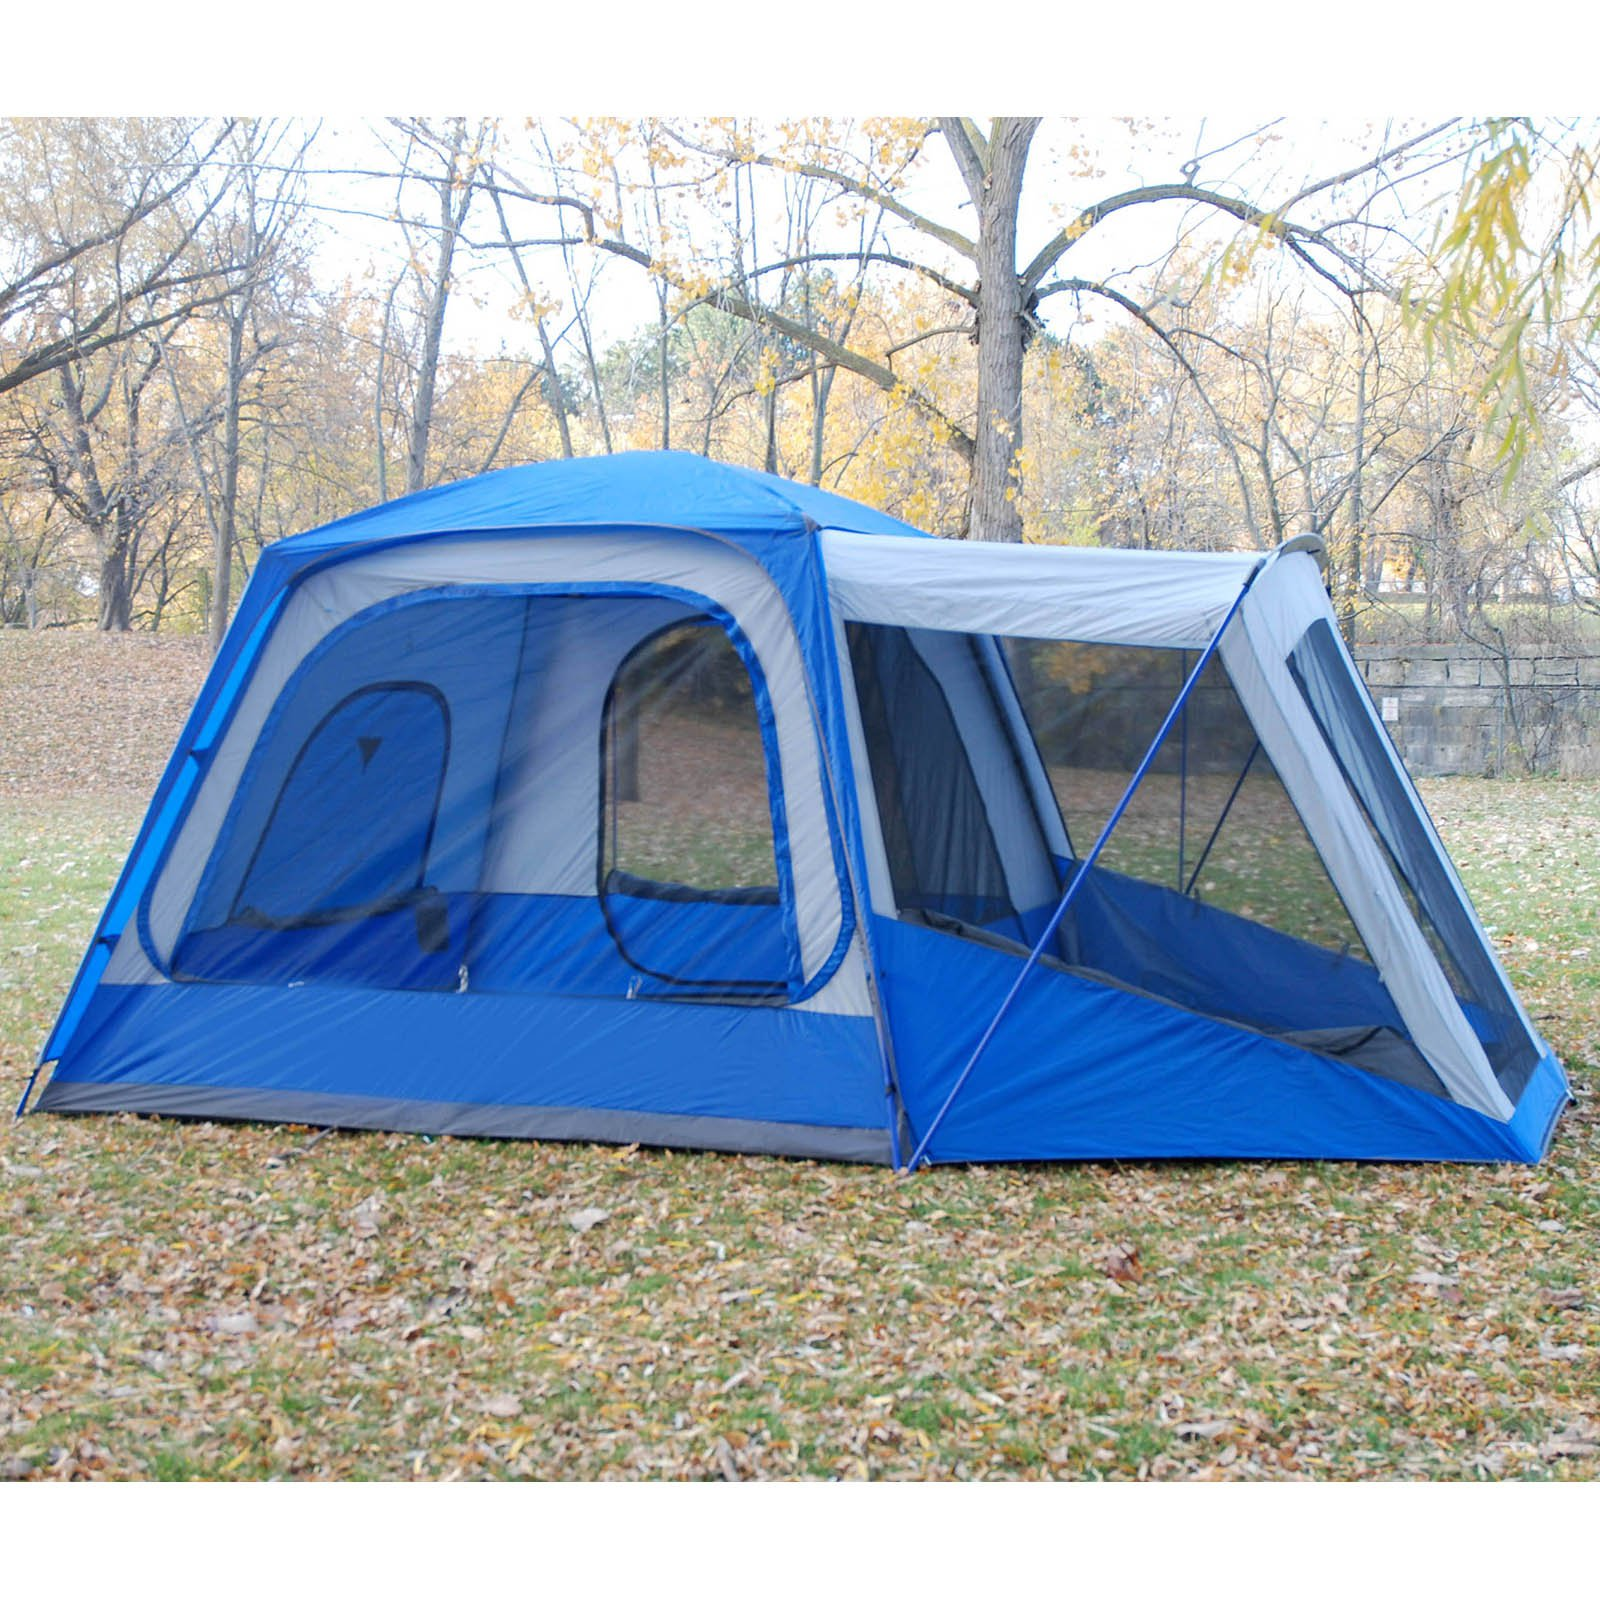 Napier Outdoors Sportz #84000 5 Person SUV Tent with Screen Room - Walmart.com  sc 1 st  Walmart & Napier Outdoors Sportz #84000 5 Person SUV Tent with Screen Room ...